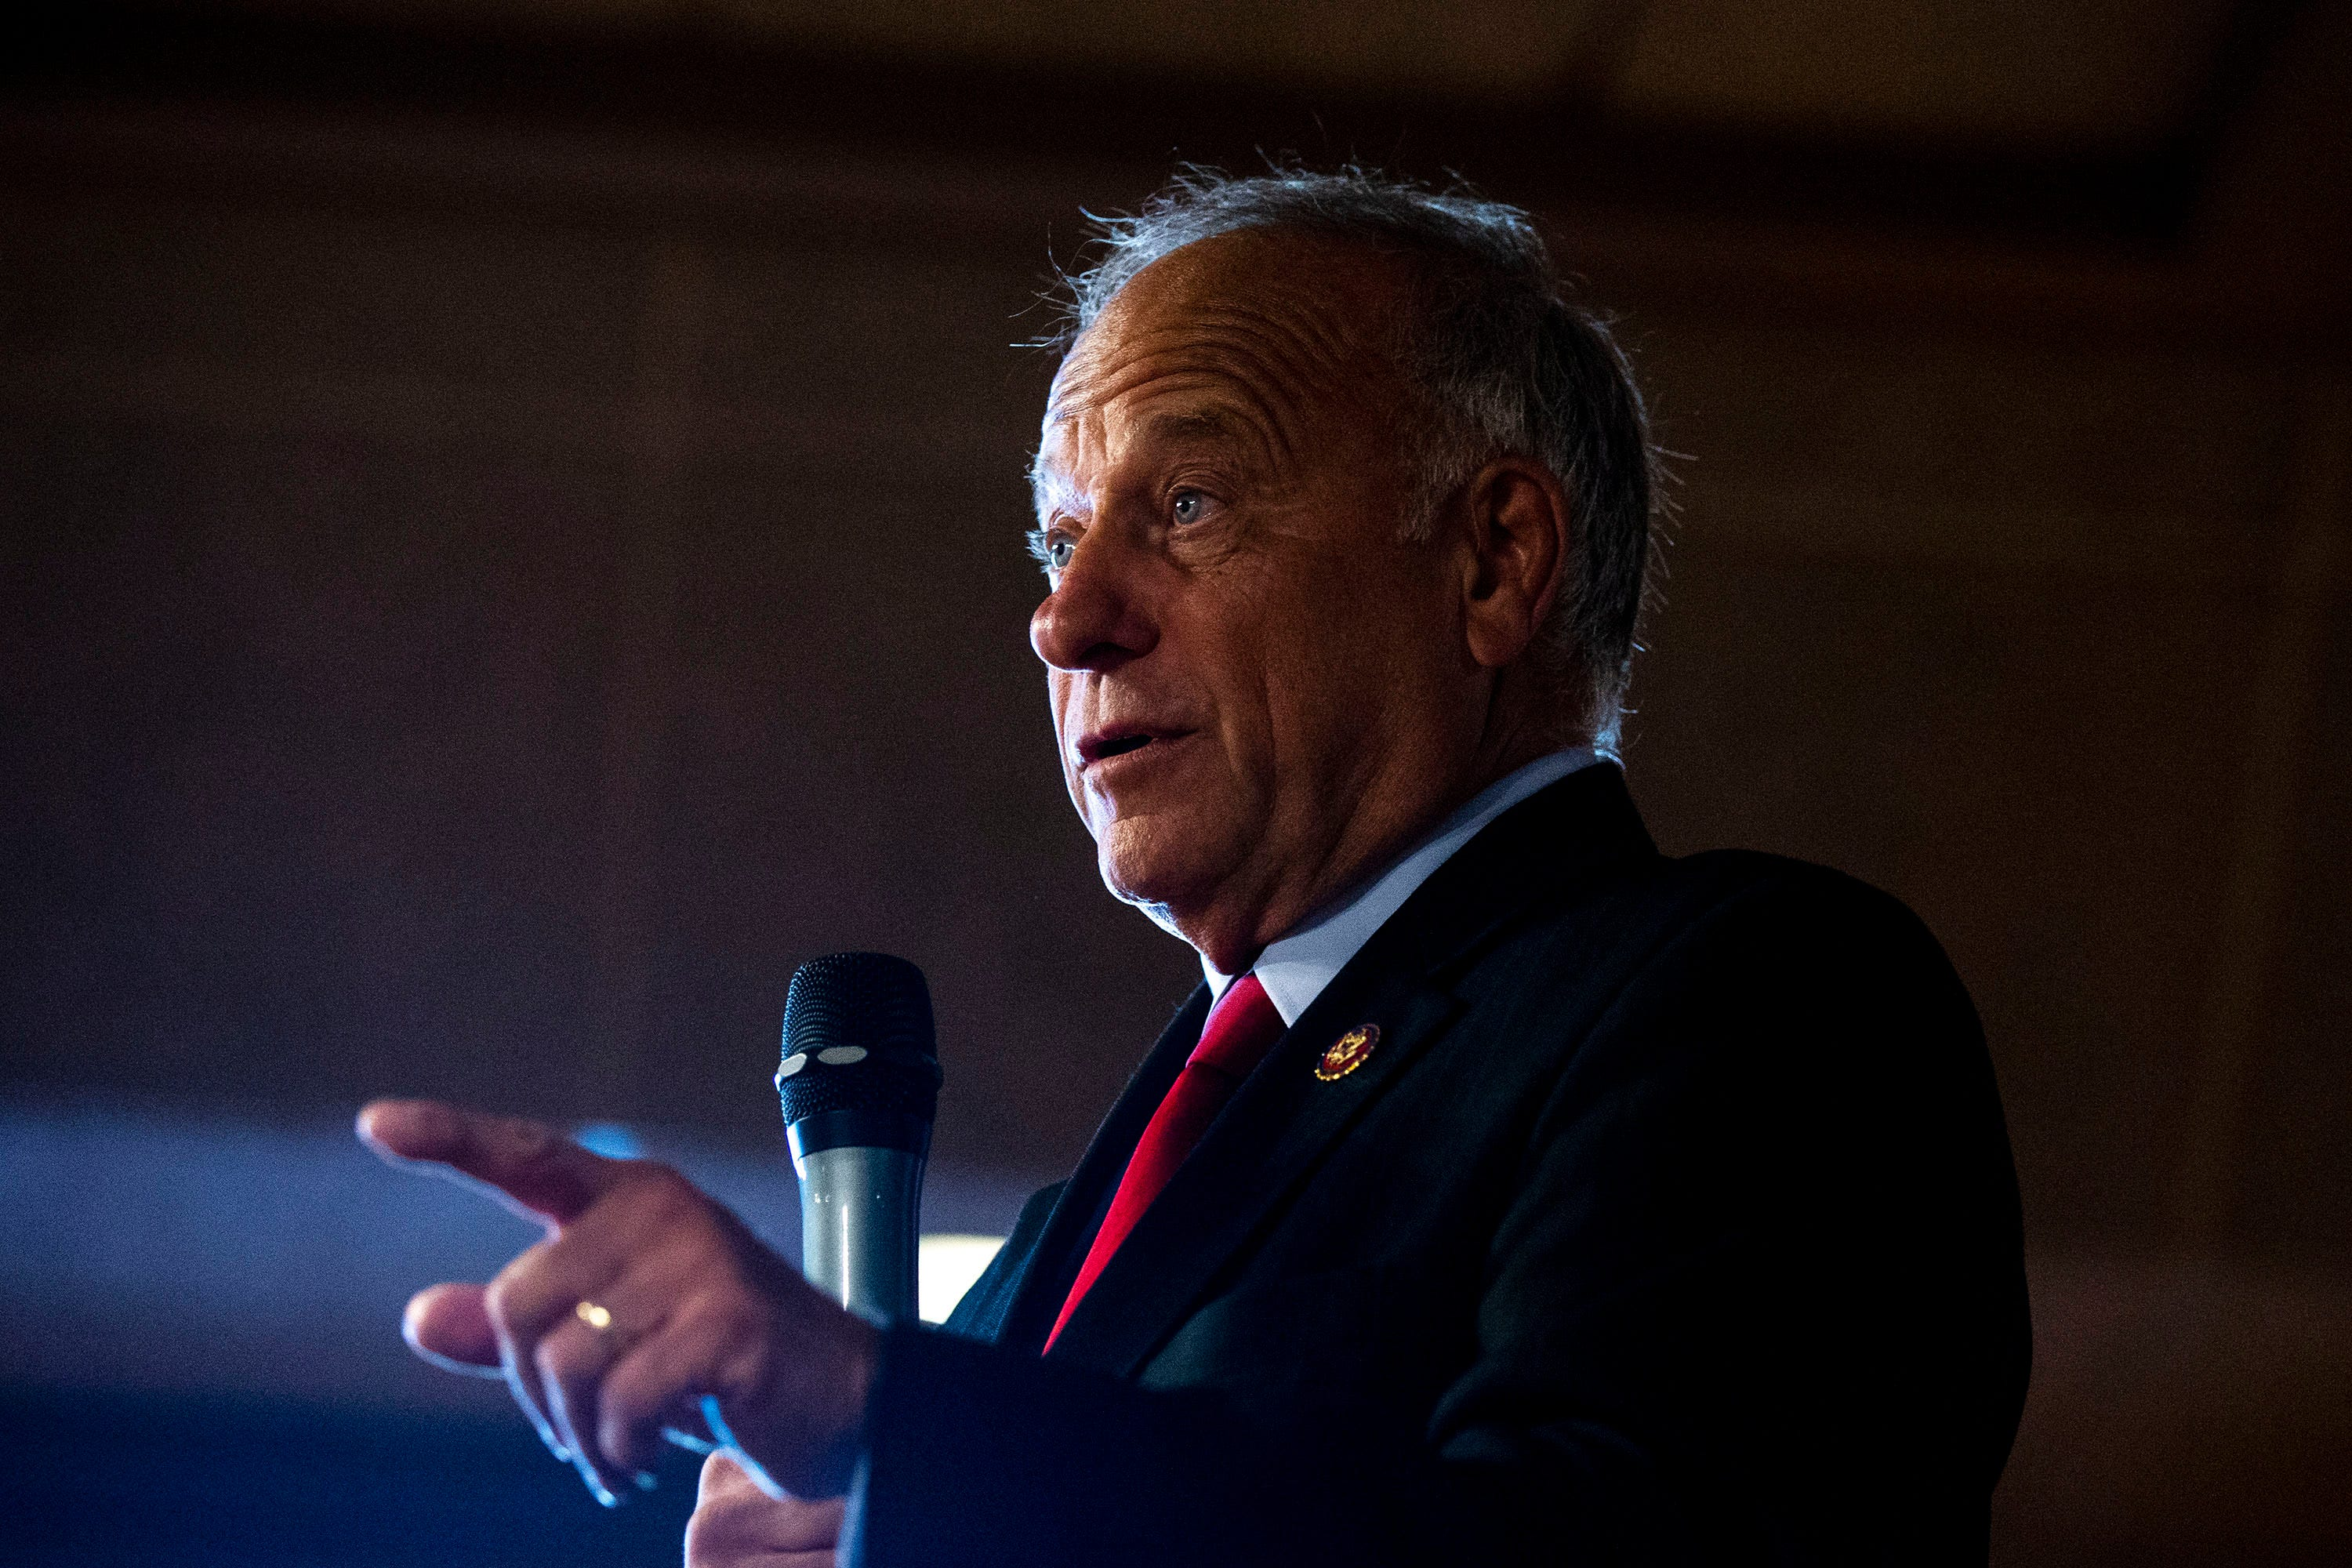 Letters: Steve King attacks families with incest comment